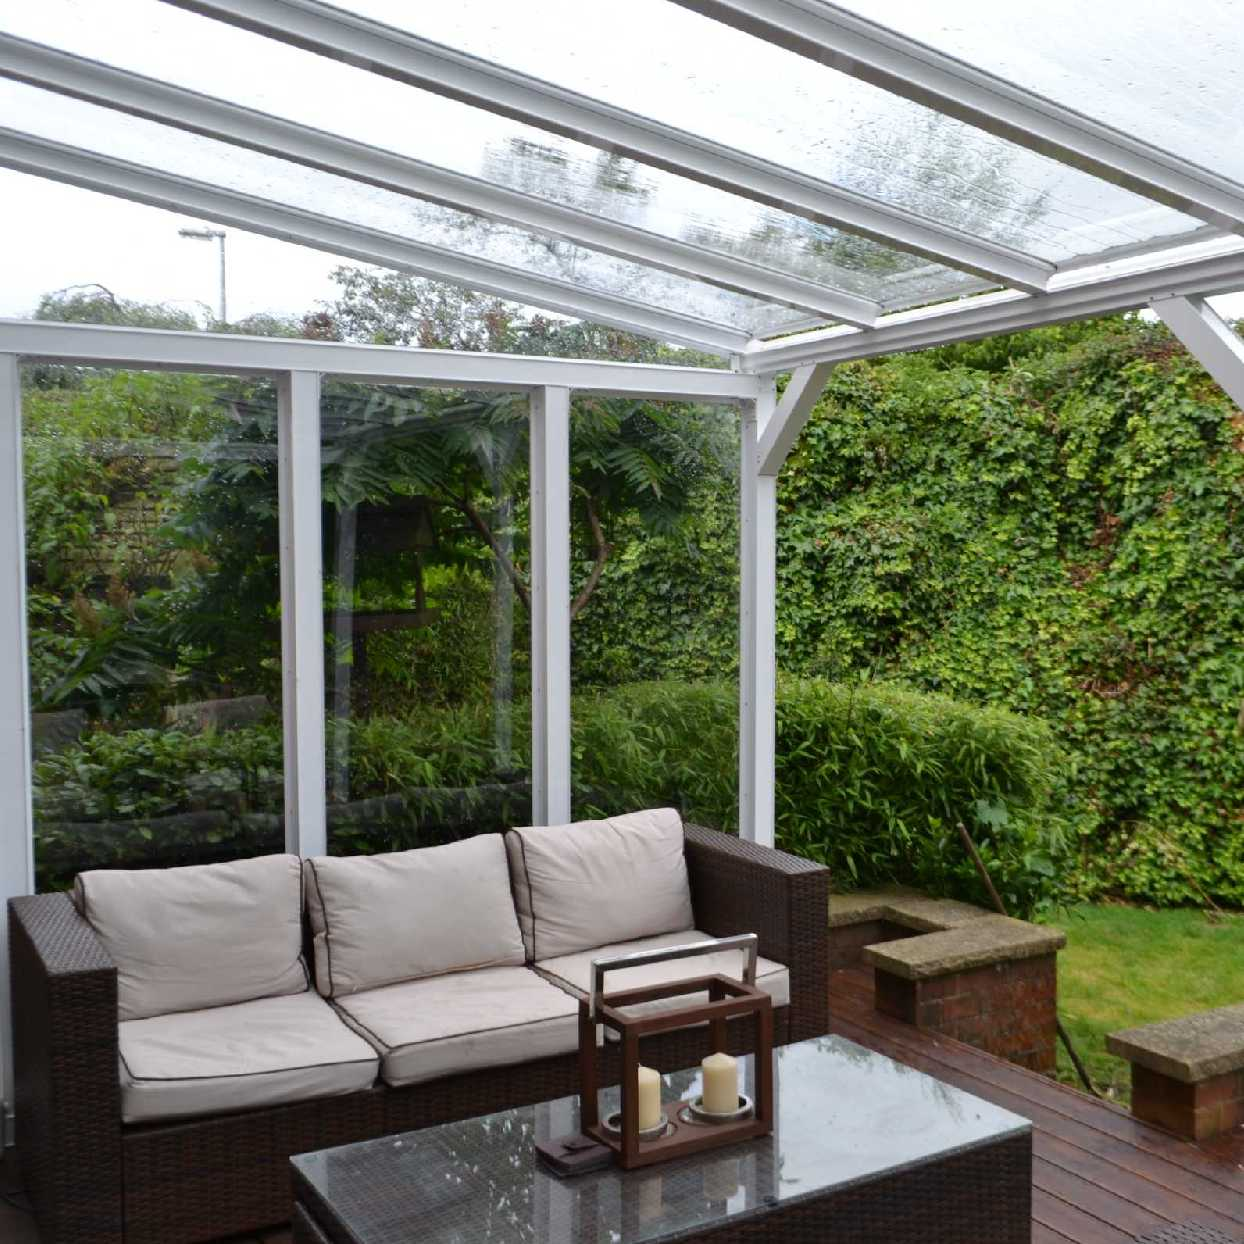 Great selection of Omega Smart White Lean-To Canopy with 16mm Polycarbonate Glazing - 4.2m (W) x 3.5m (P), (3) Supporting Posts